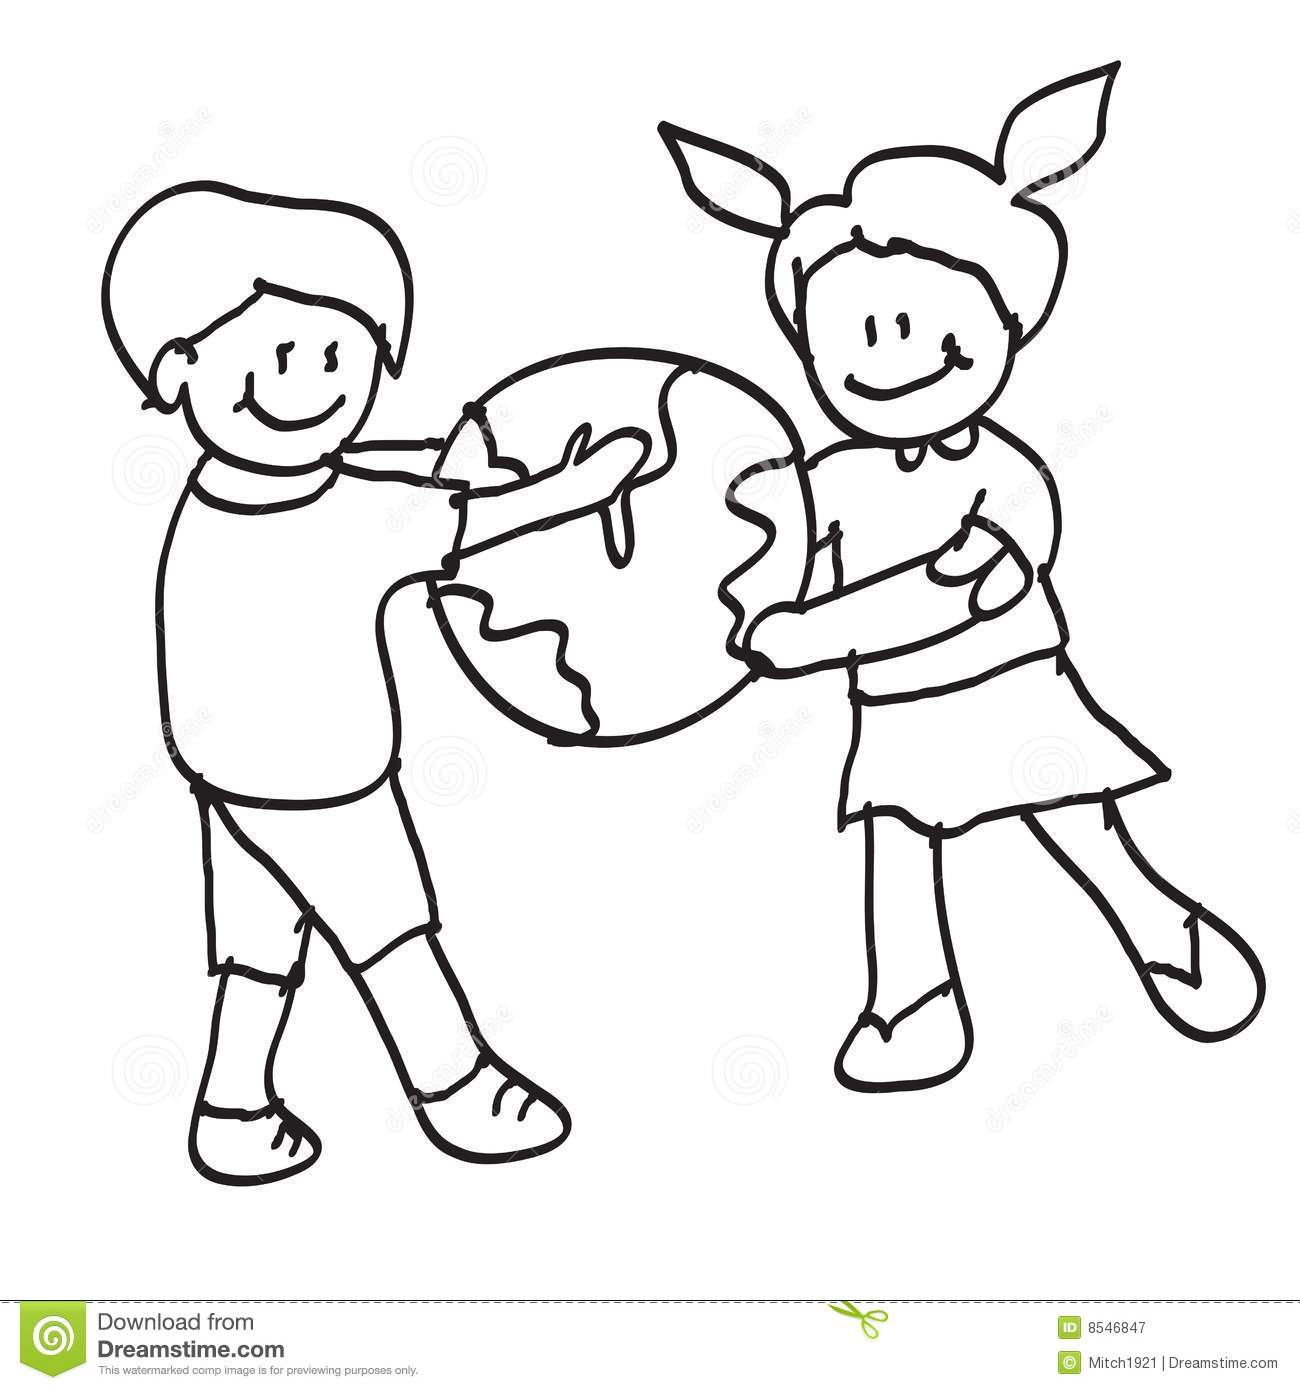 child outline coloring page - kids world royalty free stock photography image 8546847